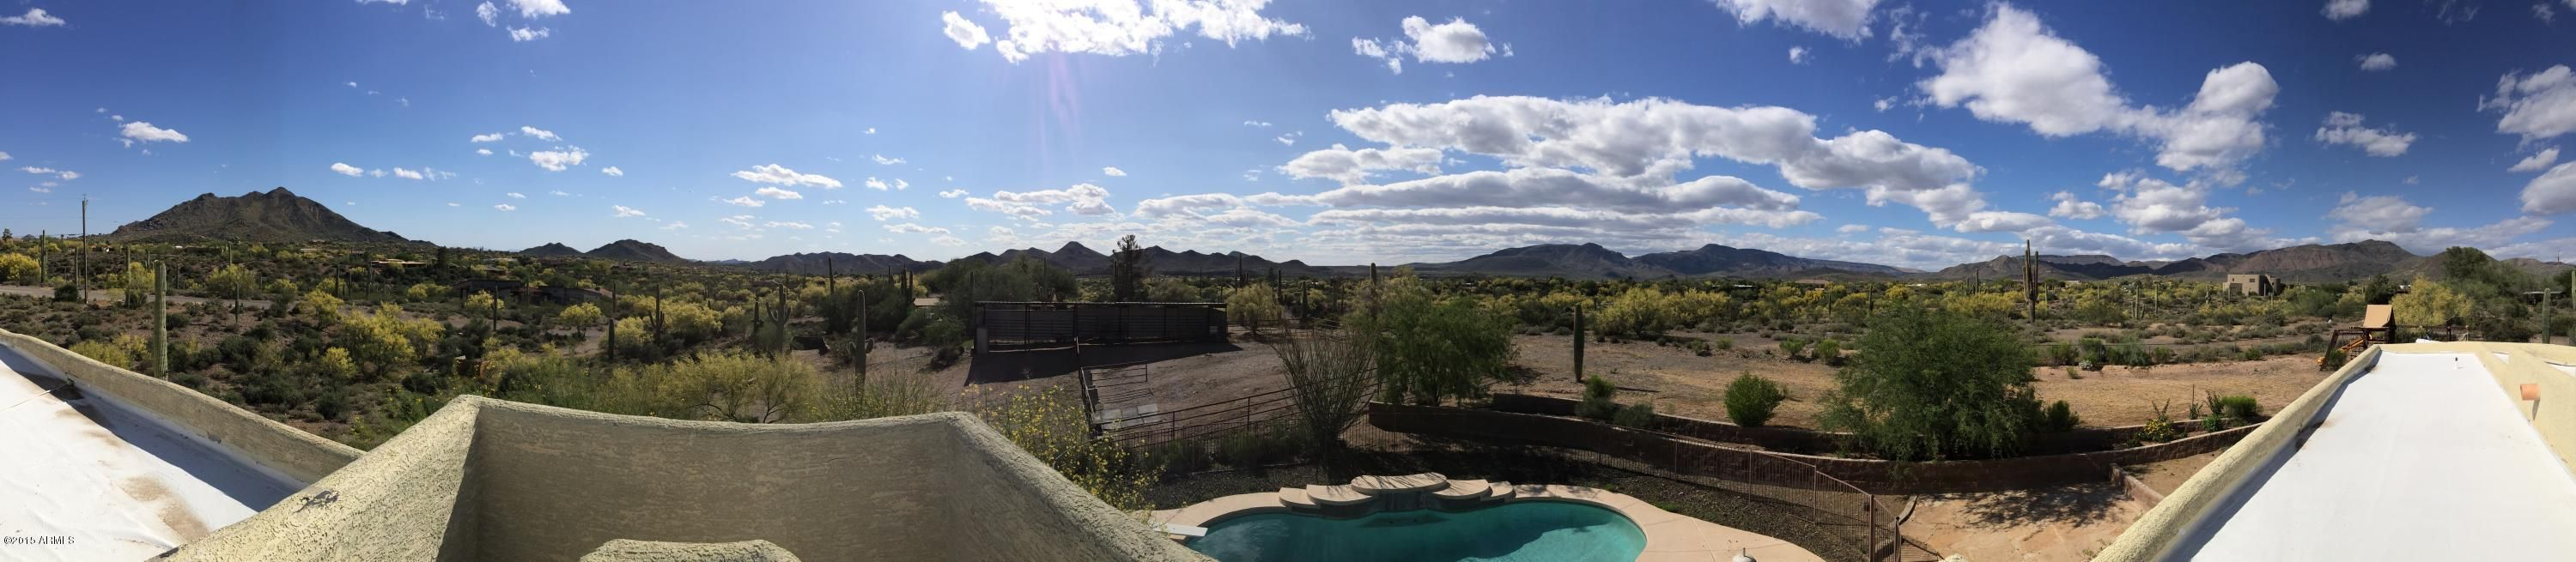 Views from this beautiful horse property! 6672 E Mesquite Road, Cave Creek AZ 85331 - Photo 29